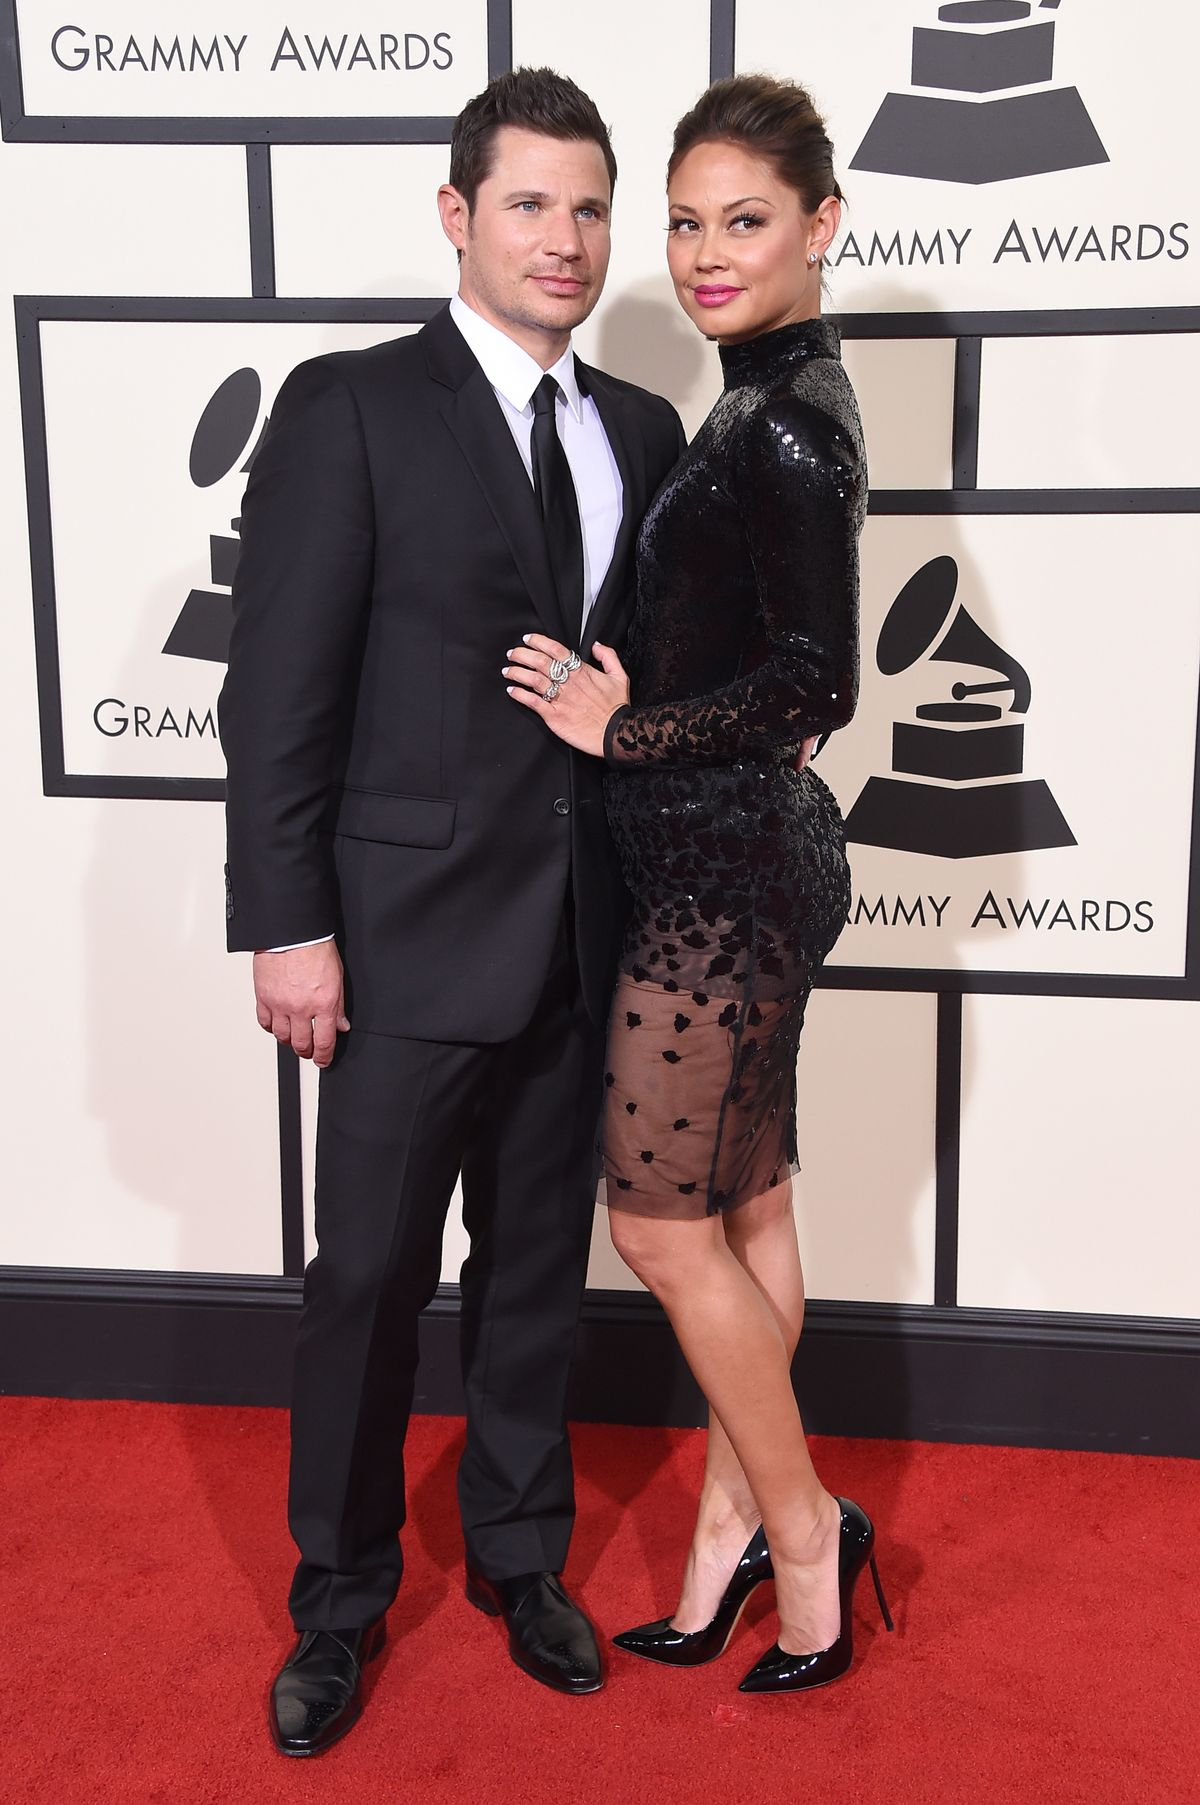 LOS ANGELES, CA - FEBRUARY 15: Recording artist/TV personality Nick Lachey (L) and TV personality Vanessa Lachey attend The 58th GRAMMY Awards at Staples Center on February 15, 2016 in Los Angeles, California. (Photo by Steve Granitz/WireImage)